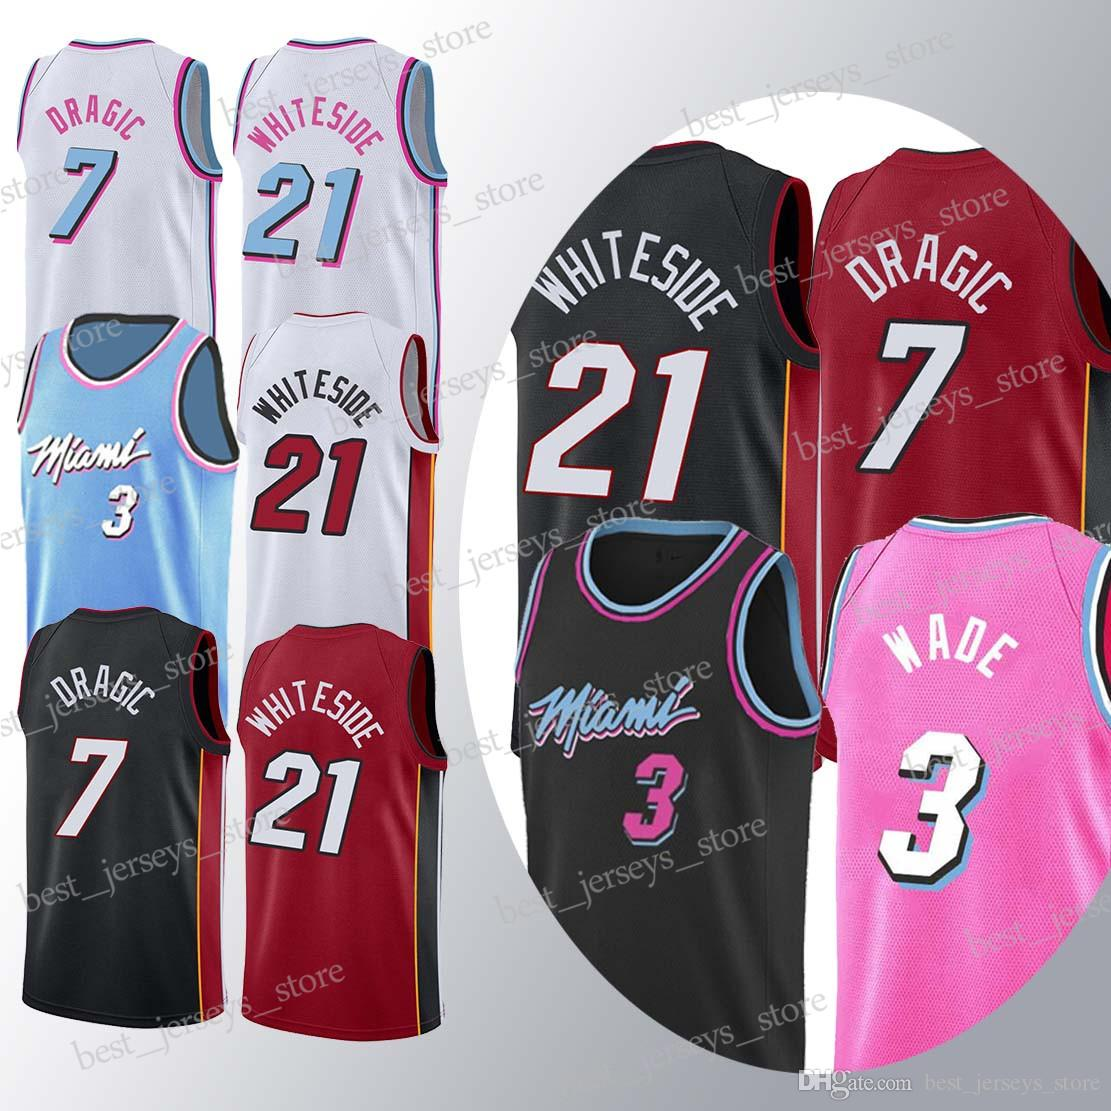 1b7cef396be 2019 21 Whiteside 7 Dragic Jerseys 3 Wade Superior Quality 18 19 Hot Sale  Jersey Sportswear Free Shopping From Best jerseys store